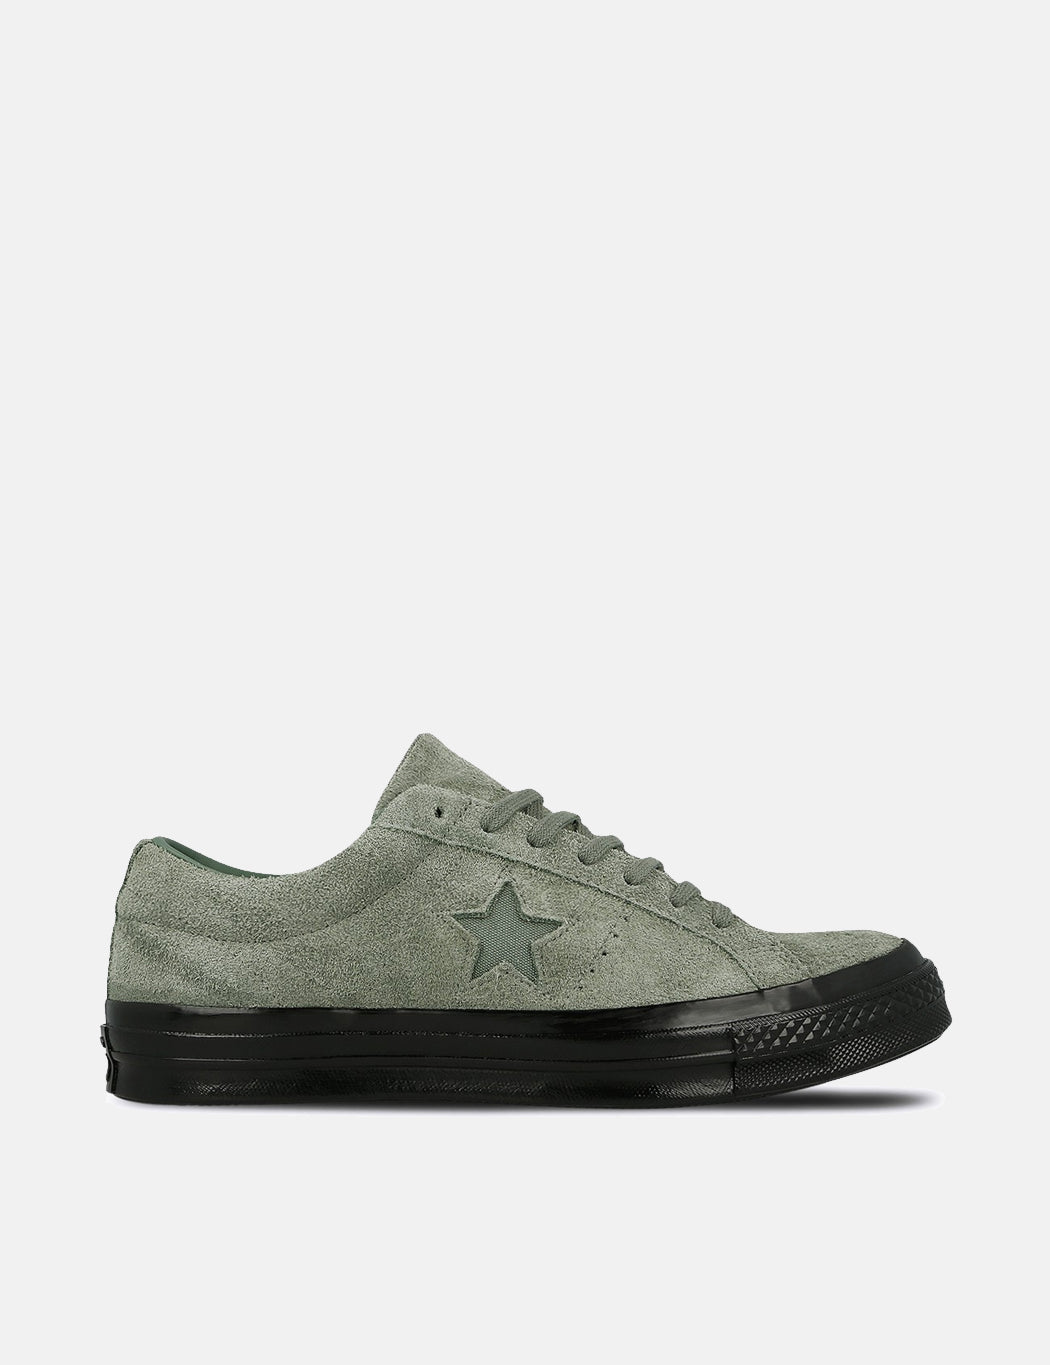 3b5d70985b626b Converse One Star Ox Low Suede (163373C) in Vintage Lichen Green Black